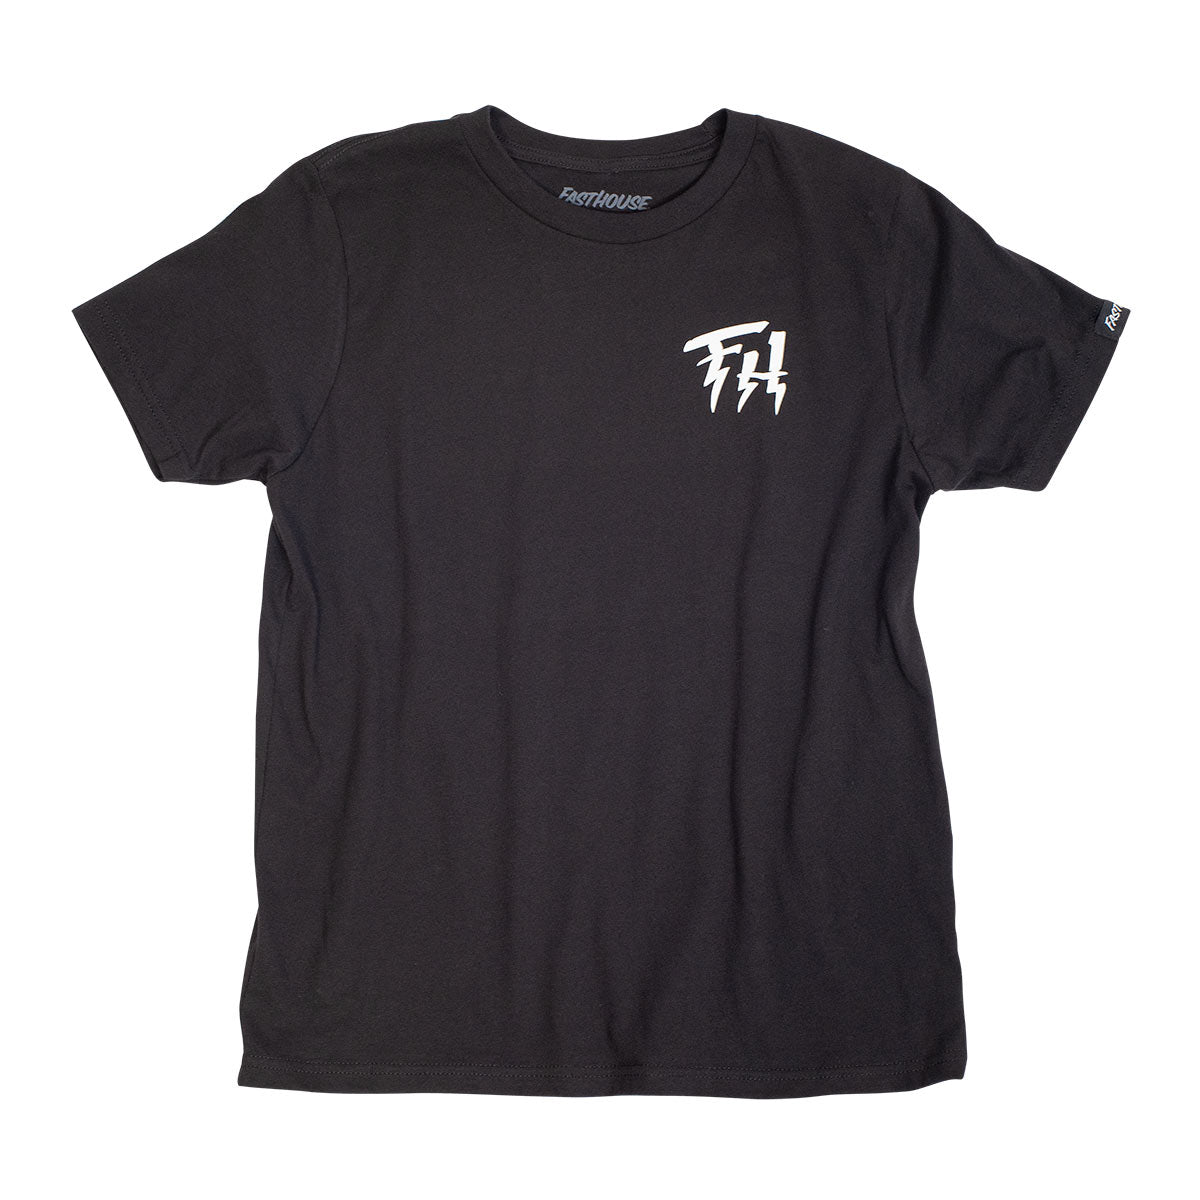 Beredude Youth Tee - Black